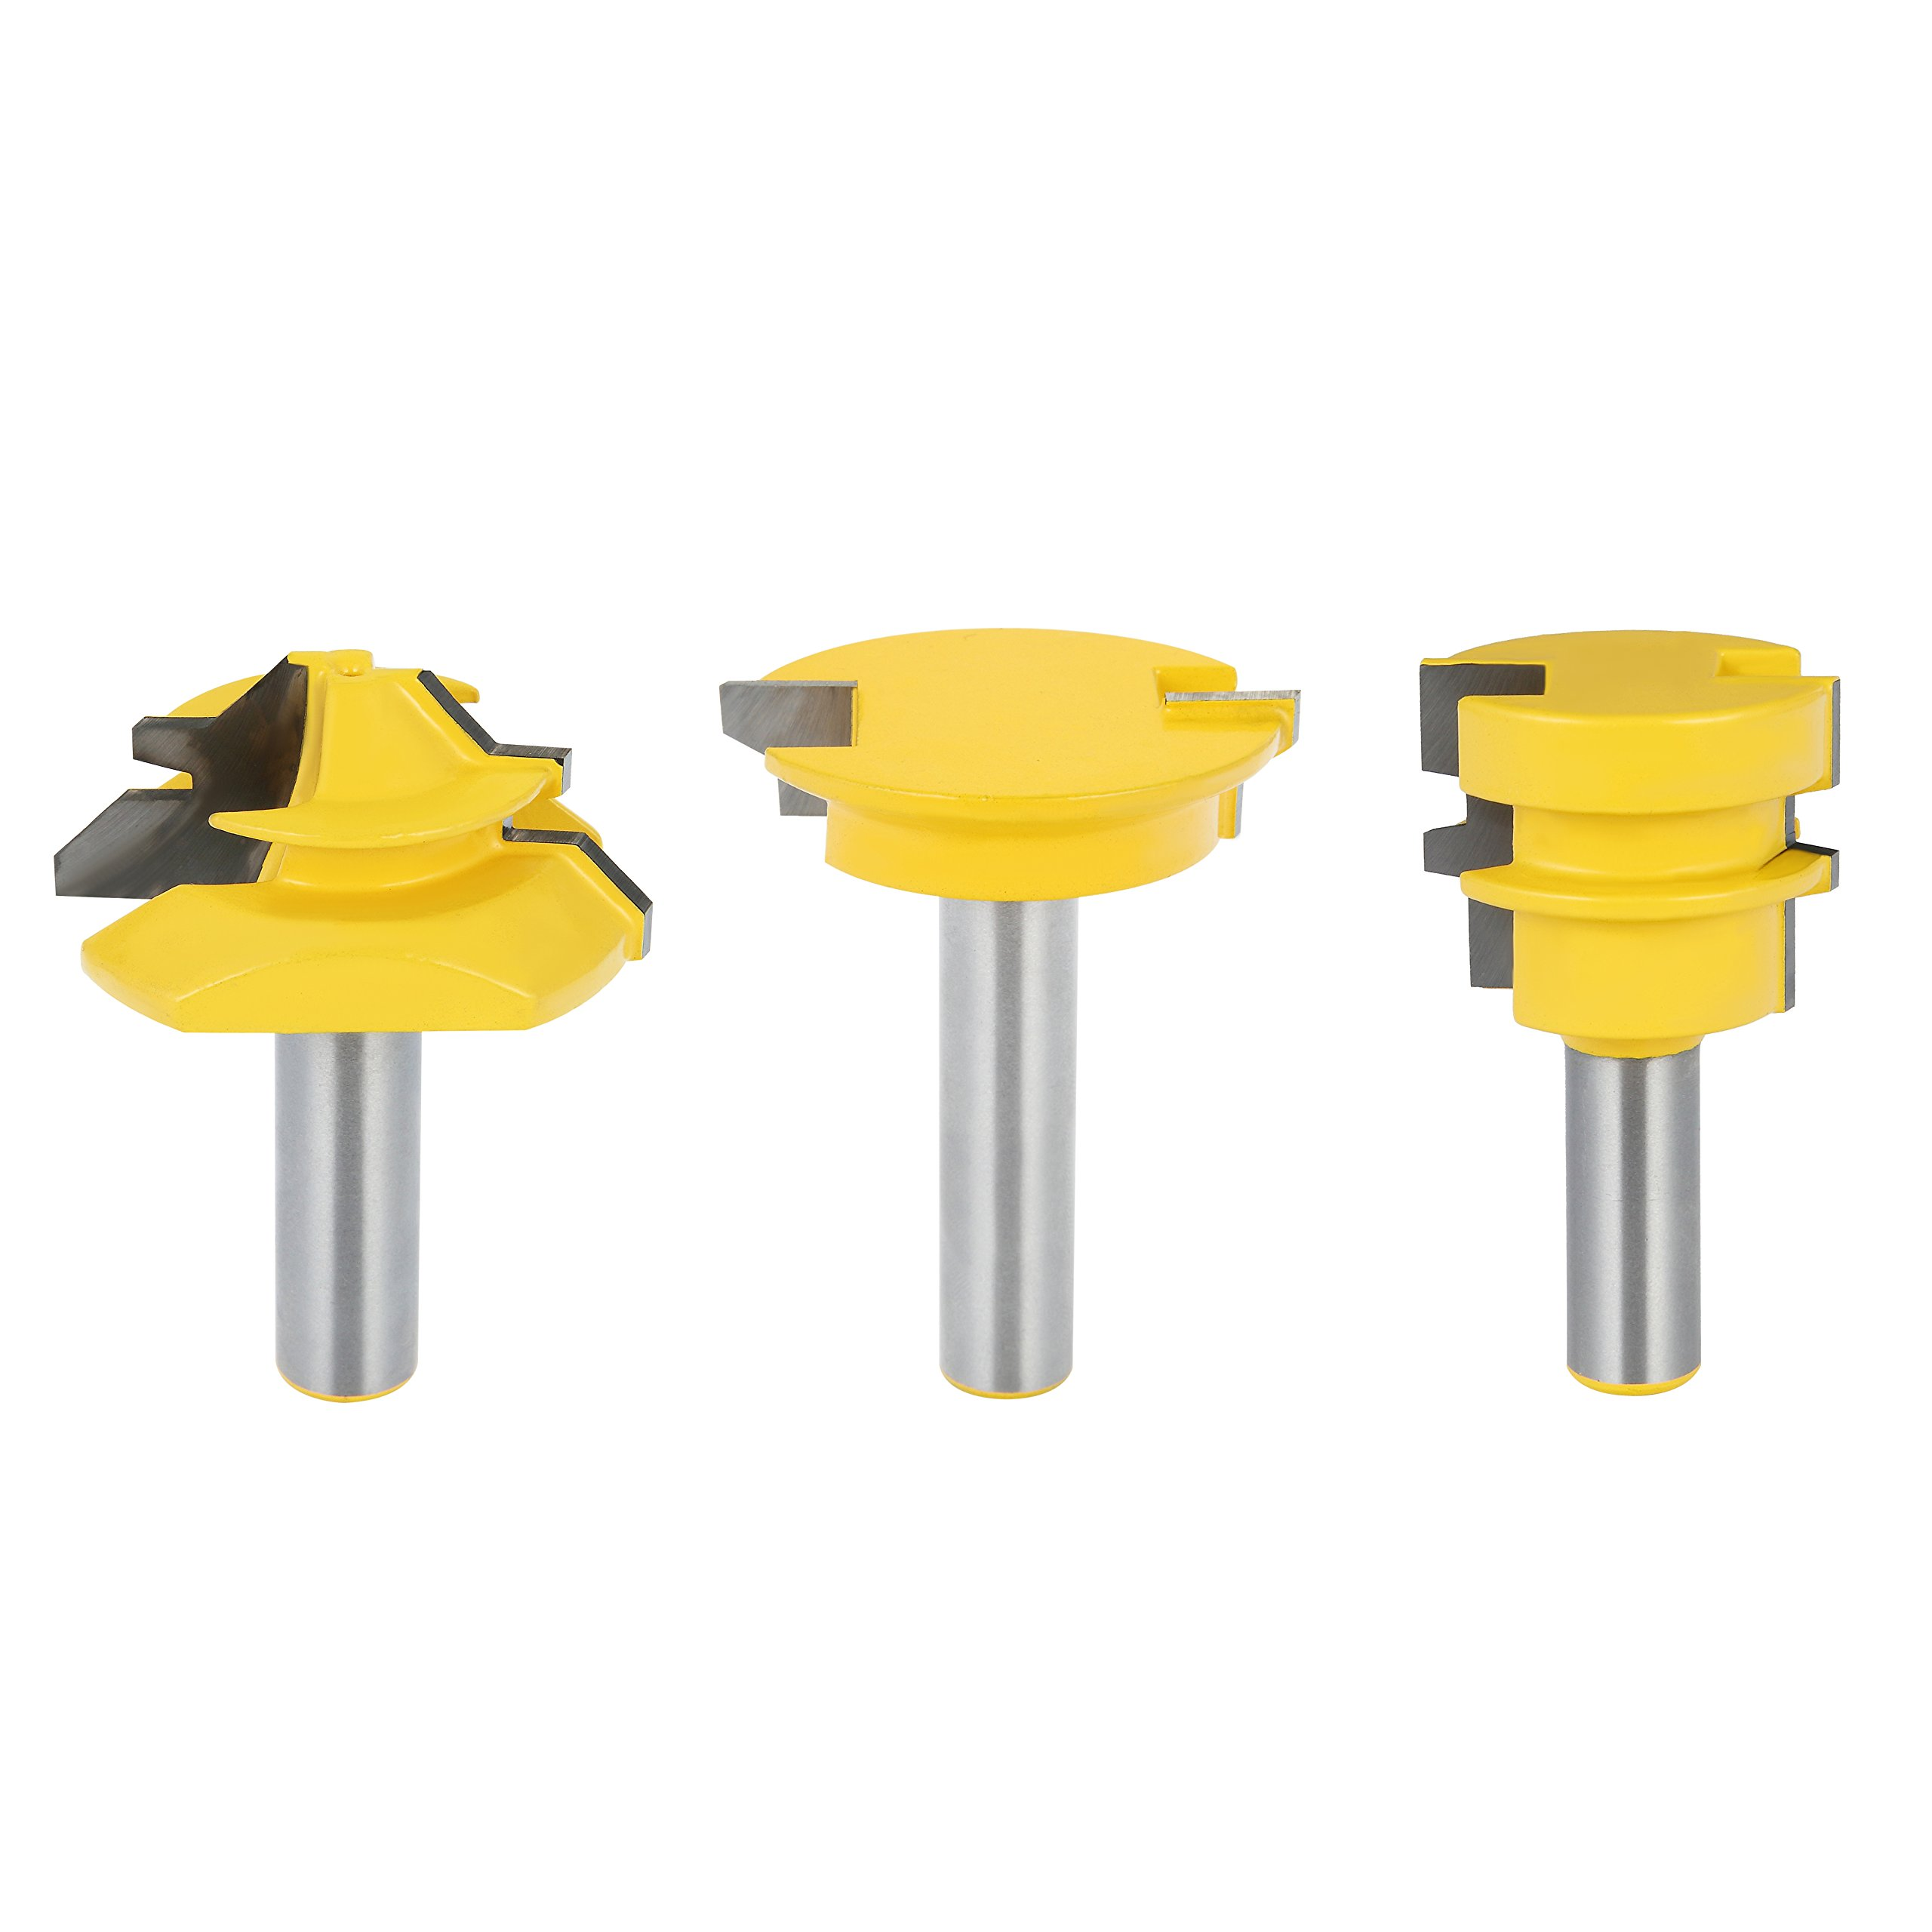 FORTOMORROW Jointing Router Bit Set -Lock Miter/Glue Joint/ Drawer Front 3pcs router bits for wood/milling tools/wood milling cutter